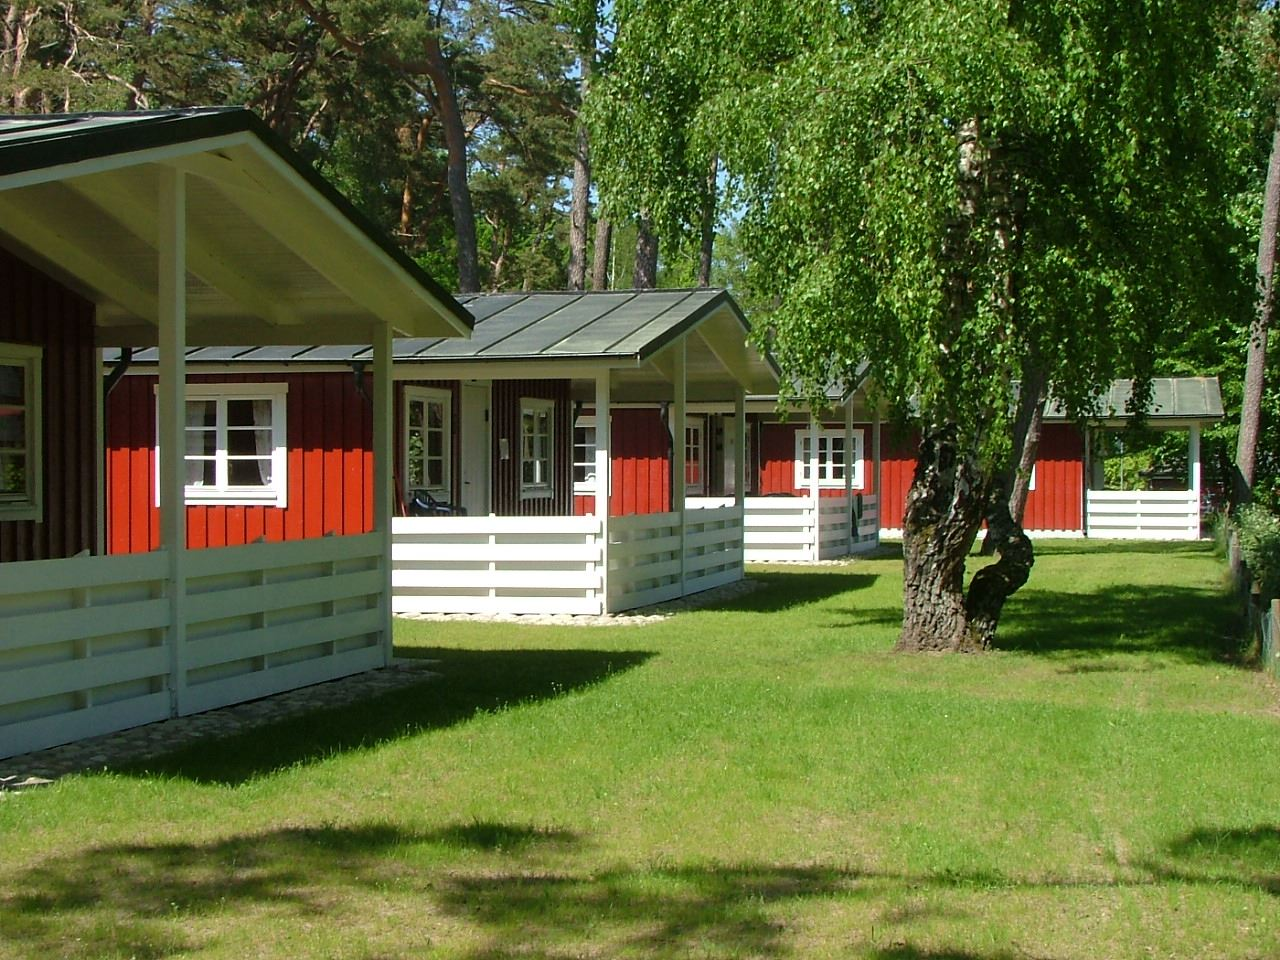 First Camp Torekov / Cottages